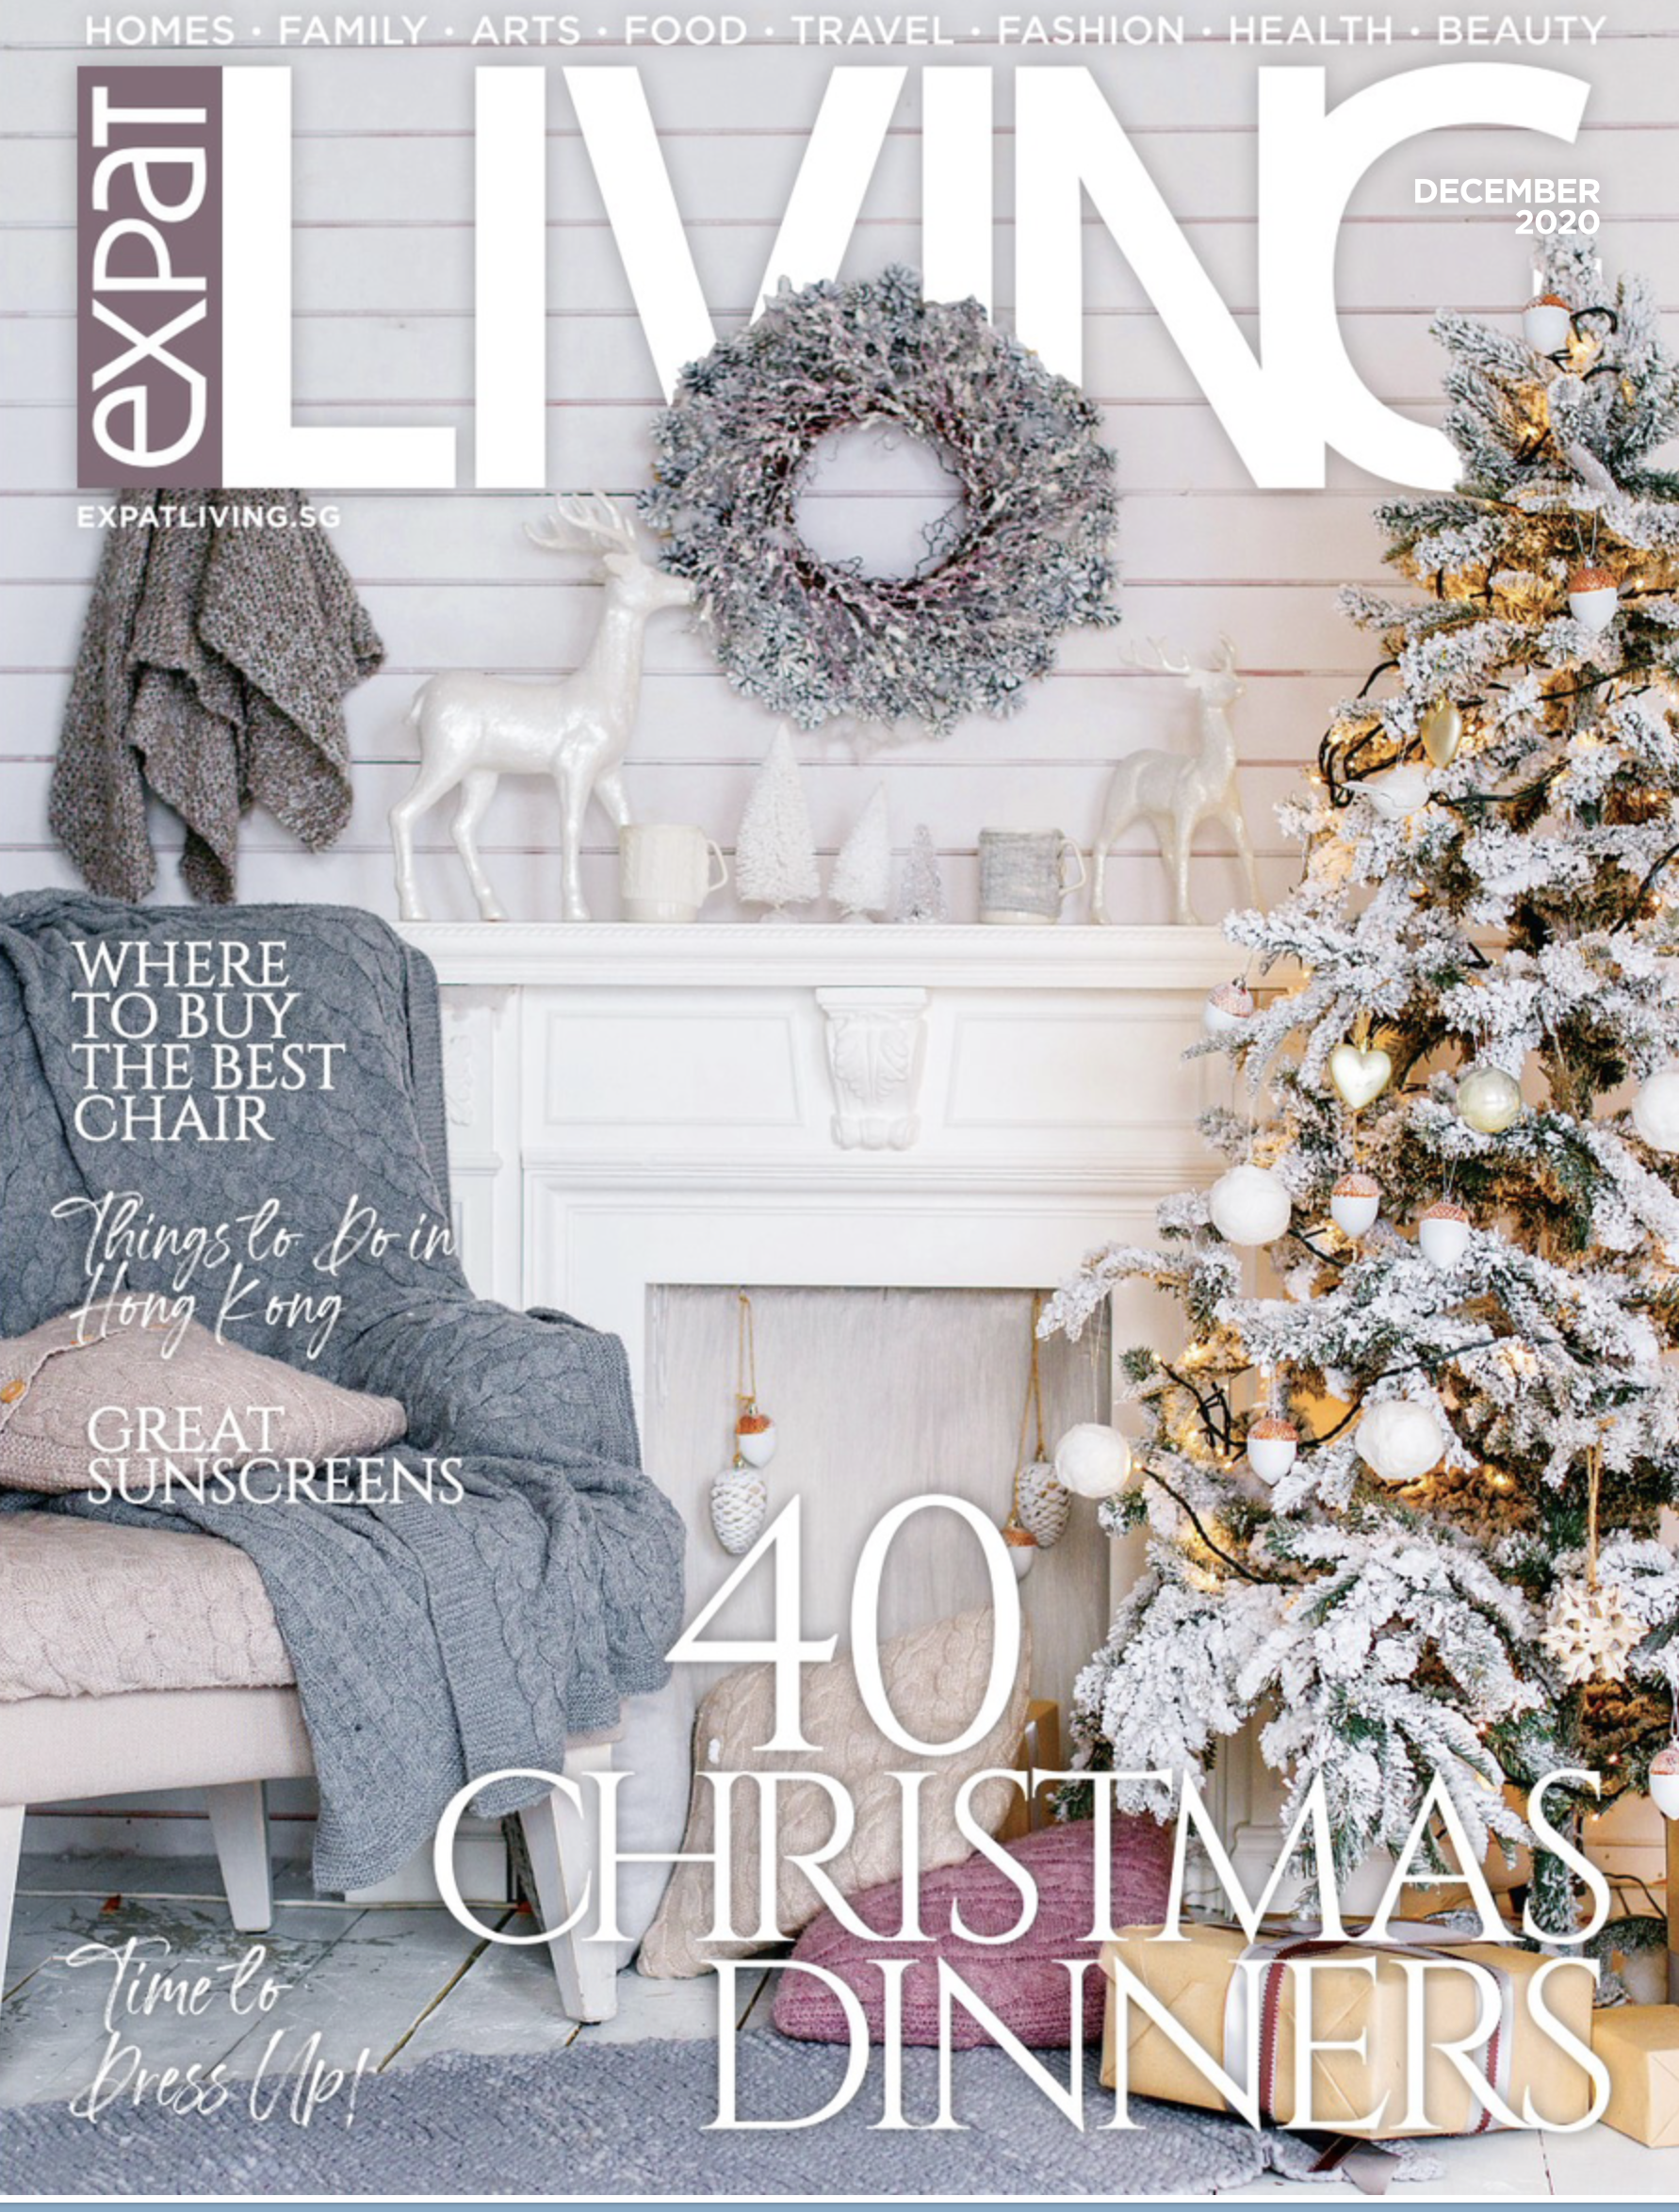 Lanos gifts recommended in Expat Living Dec 2020